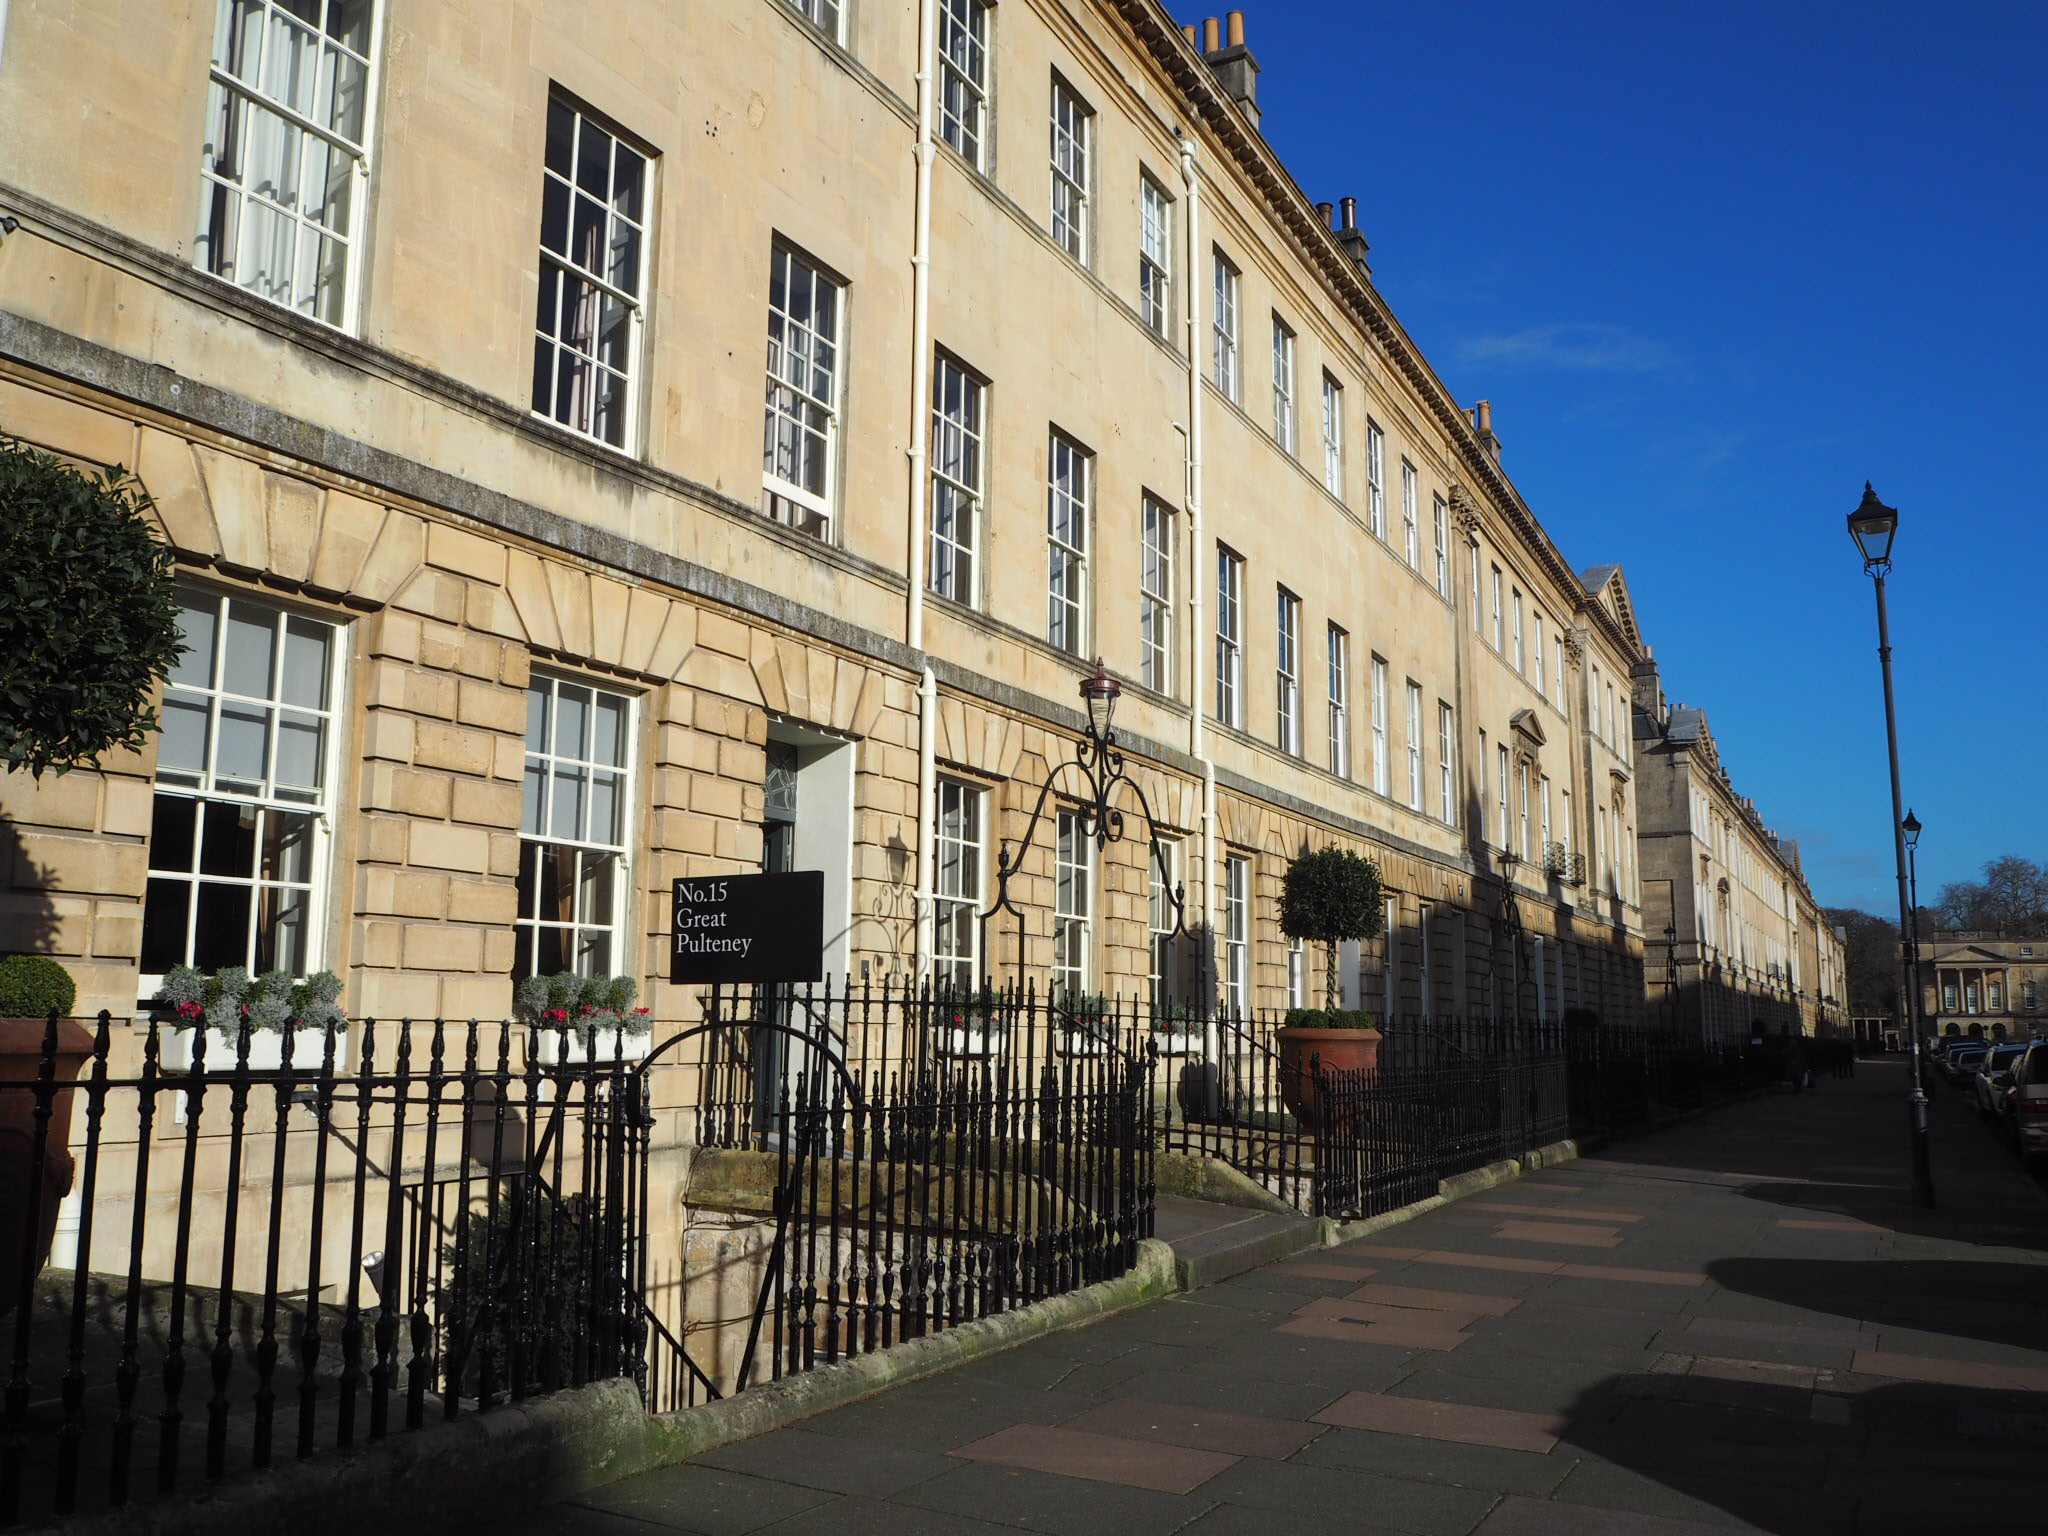 no15 great pulteney bath